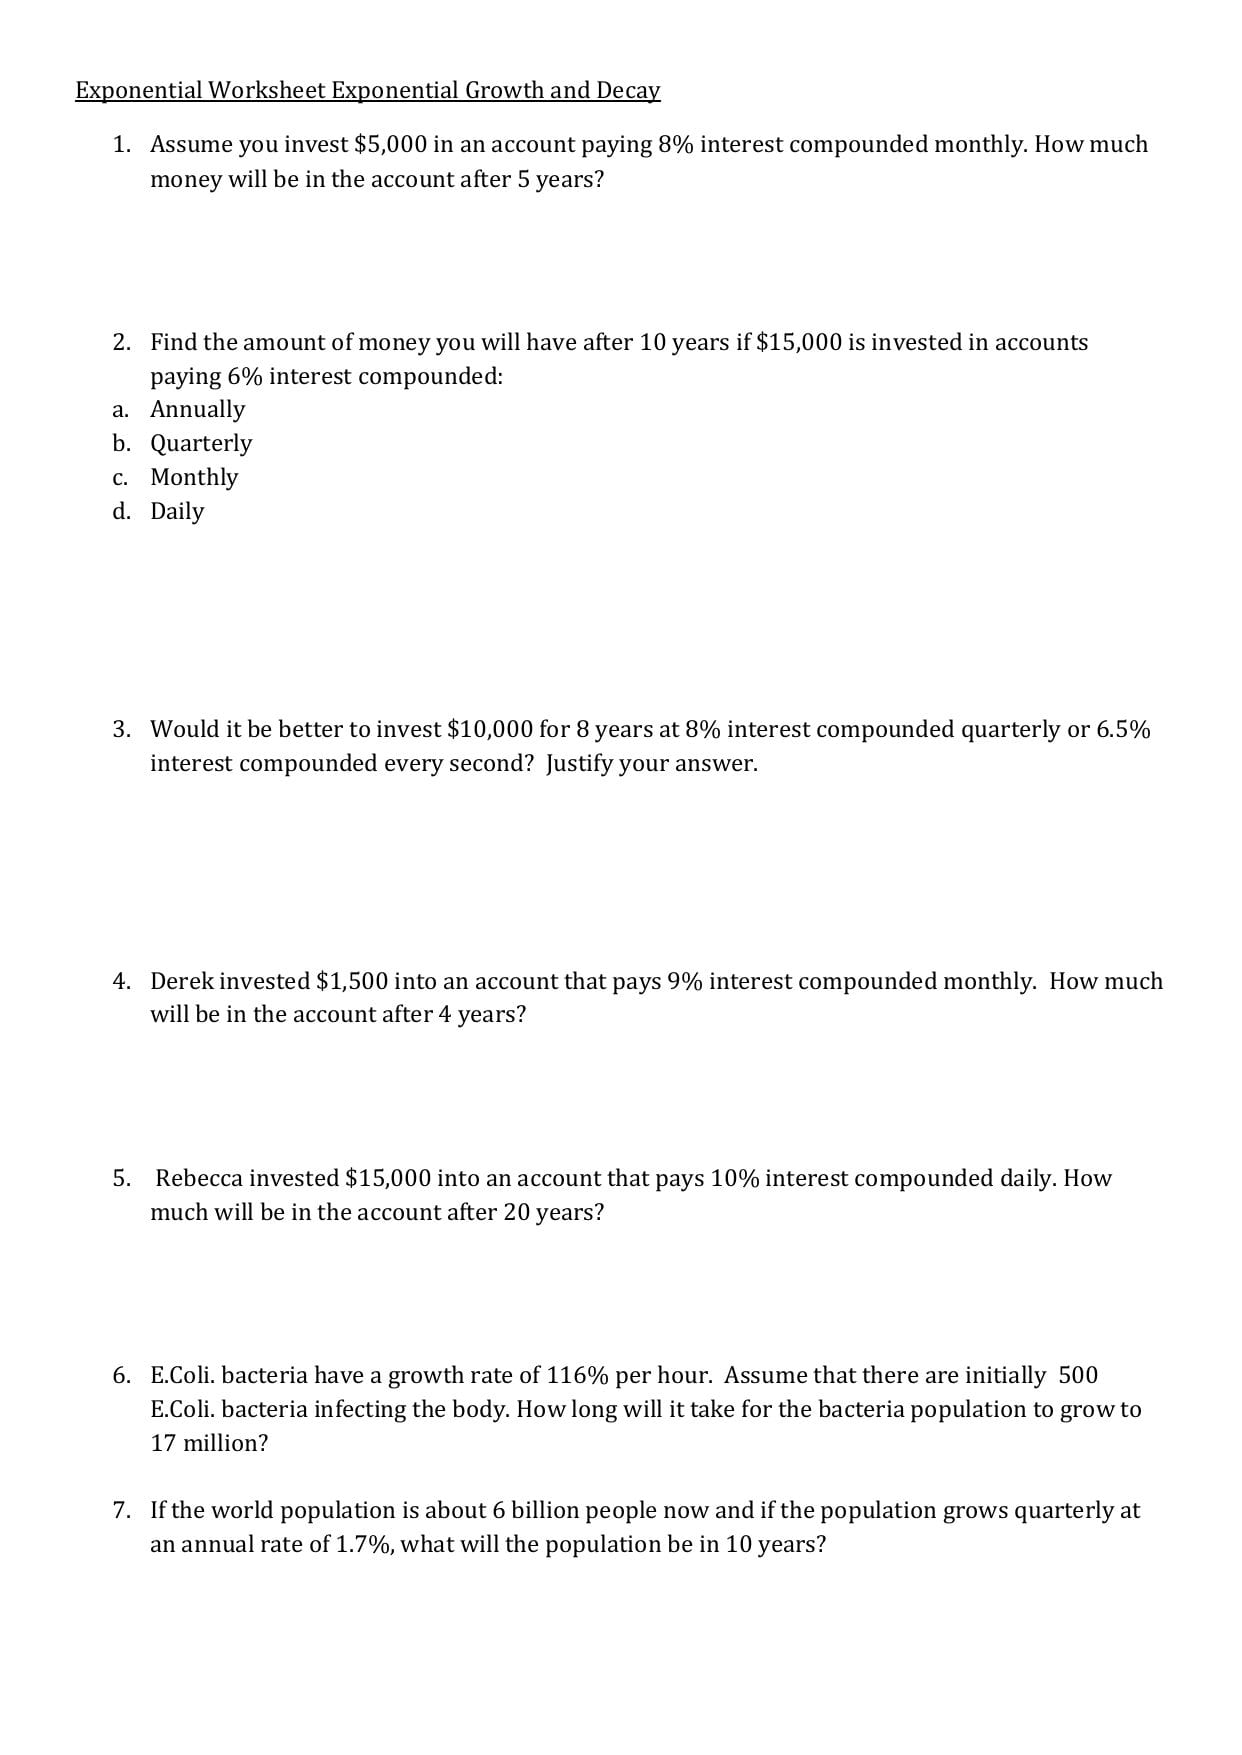 Exponential Worksheet Exponential Growth And Decay 1